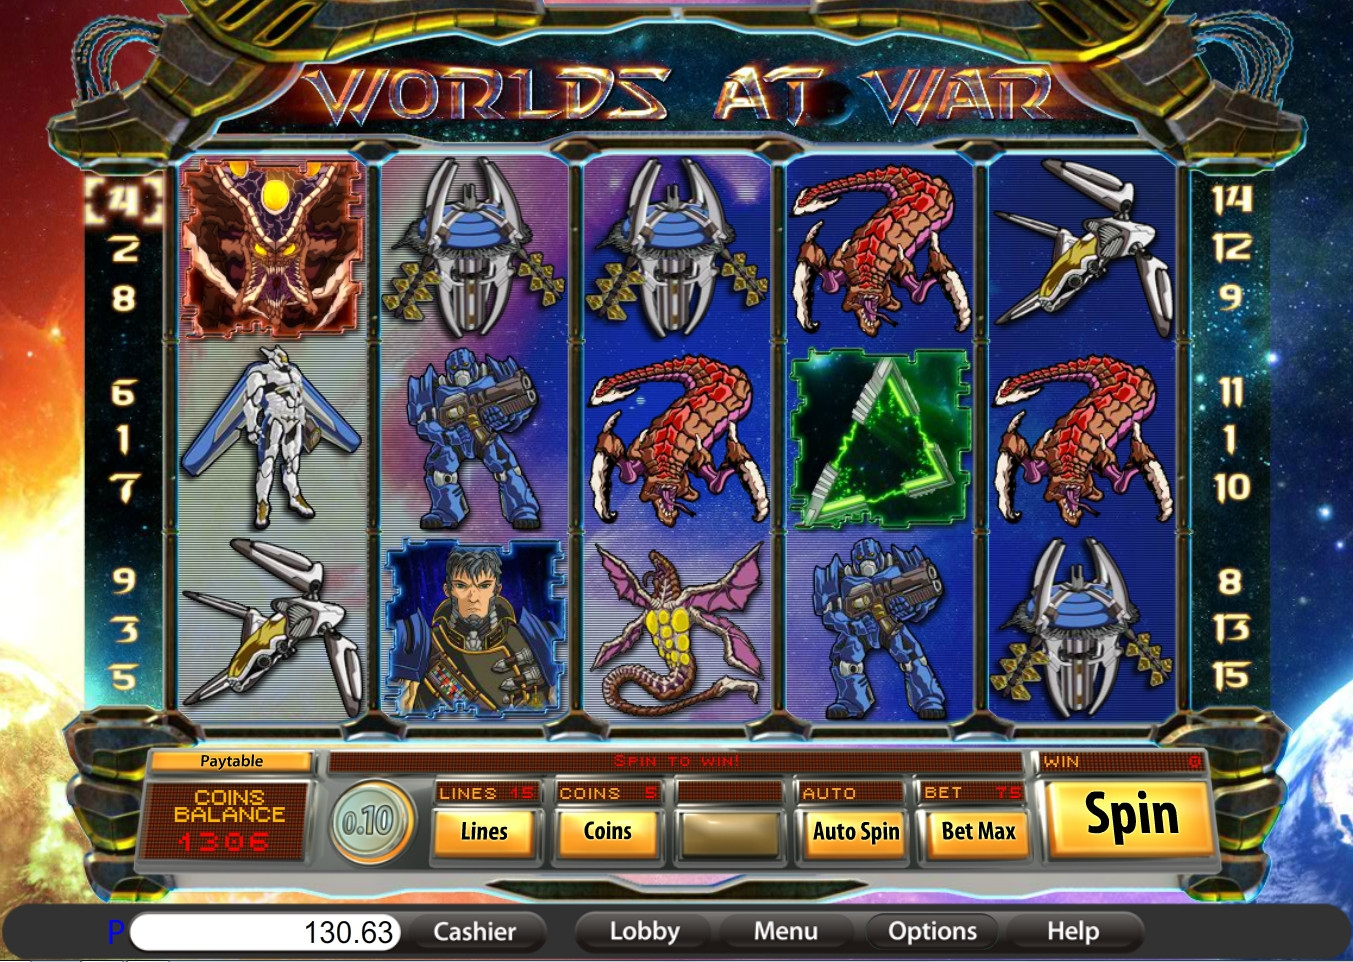 Club Spin Slot - Read a Review of this Parlay Casino Game